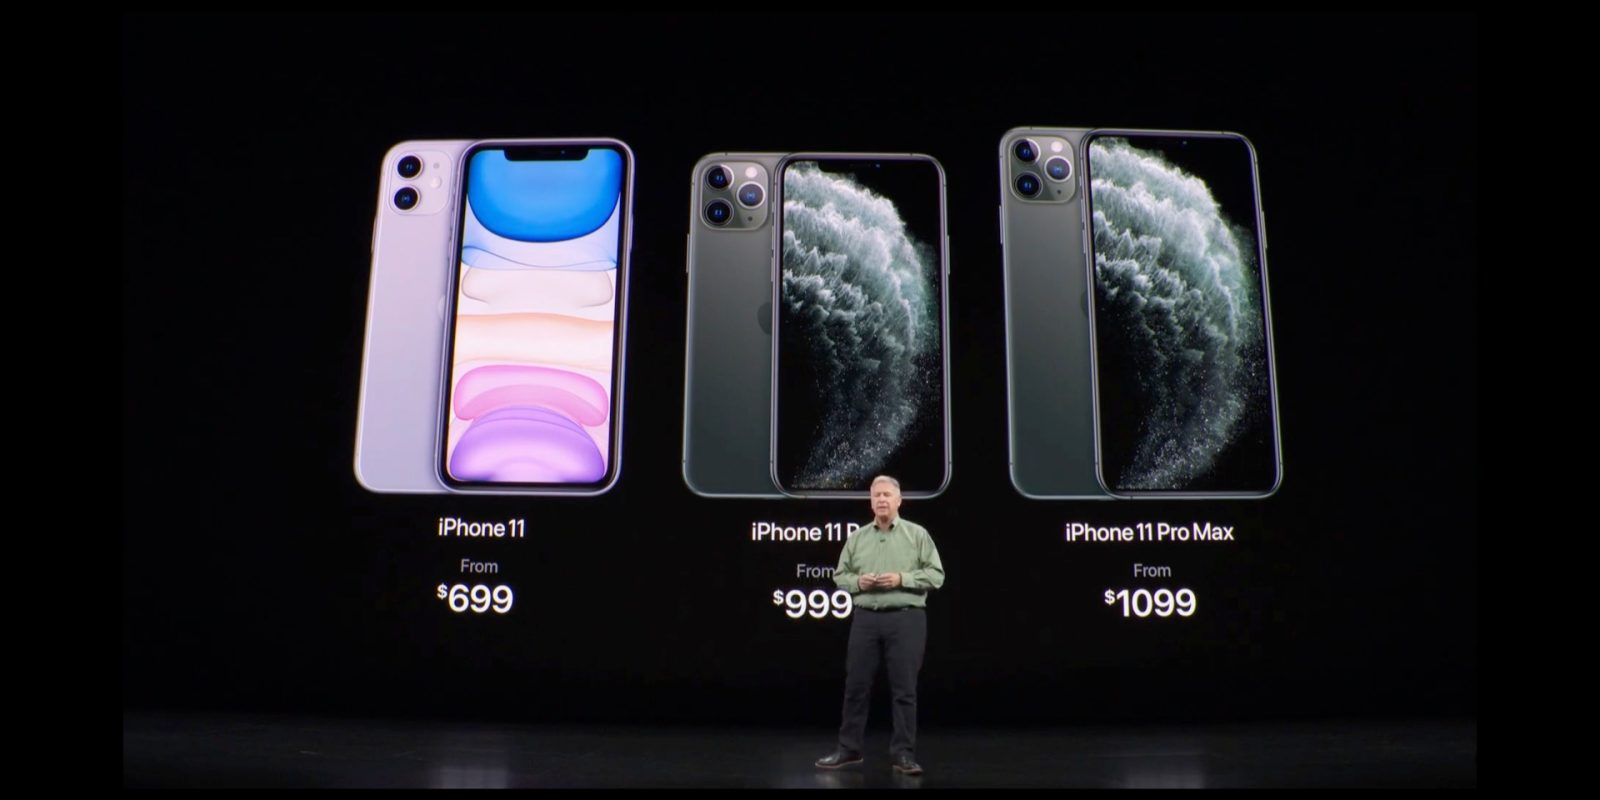 Here's how much iPhone 11 and iPhone 11 Pro will cost with carrier financing and promotions